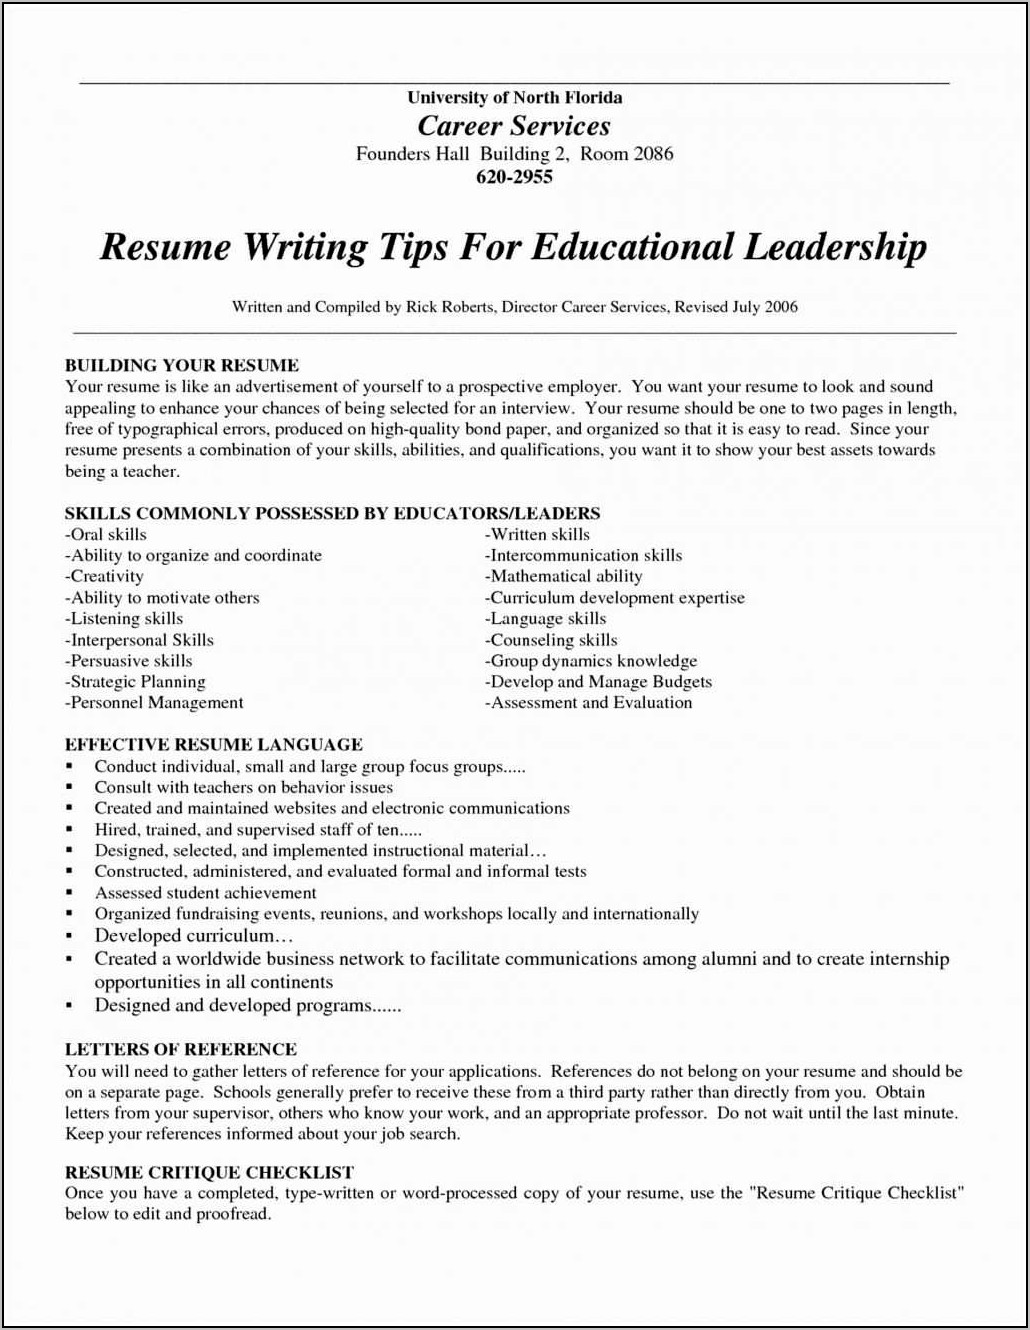 Resume Professional Writers Reviews